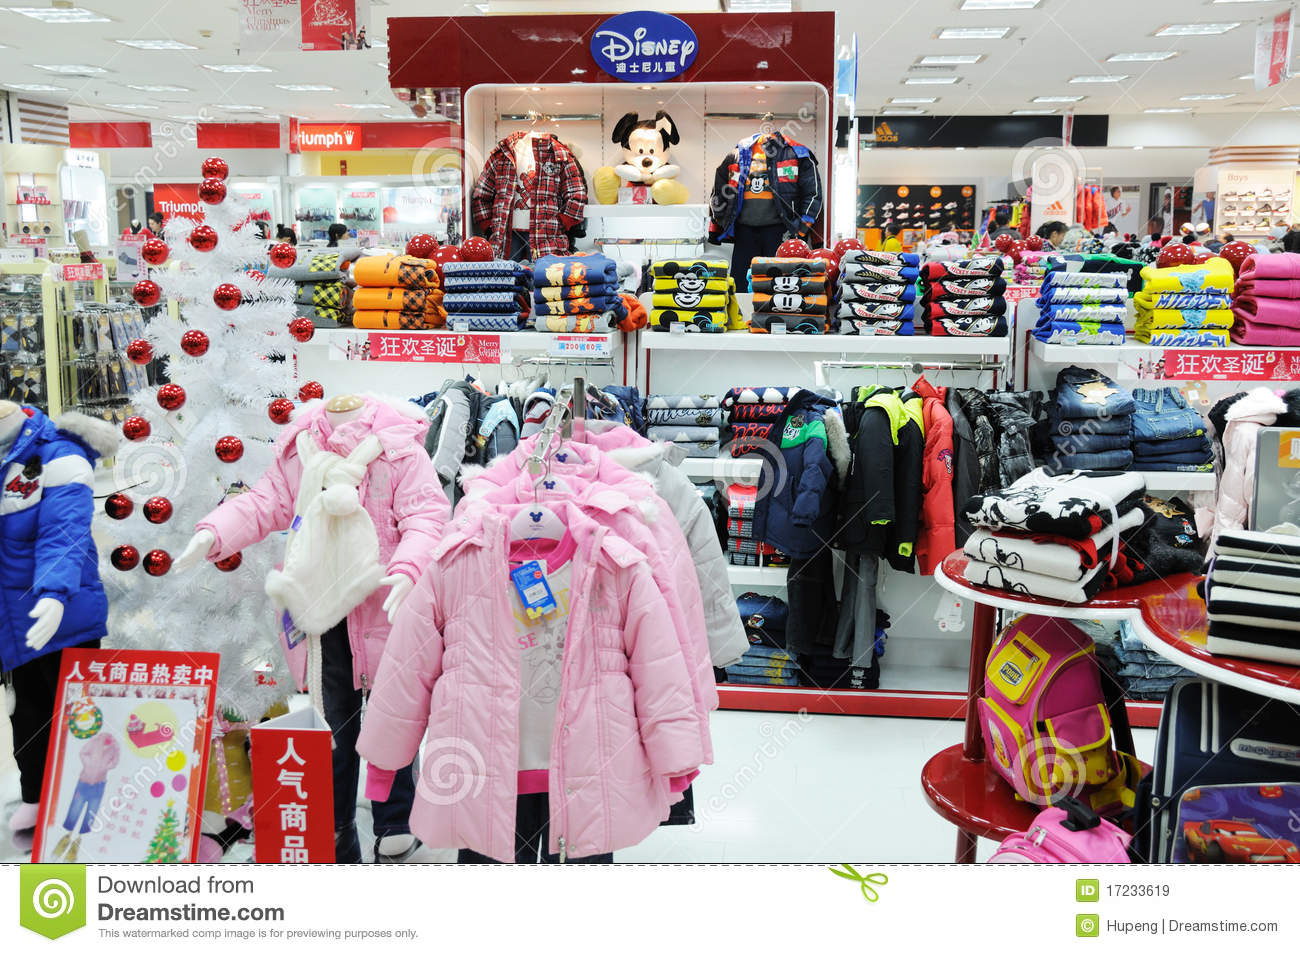 Disney Boys And Girls Clothes Shop Editorial Stock Image - Image ...